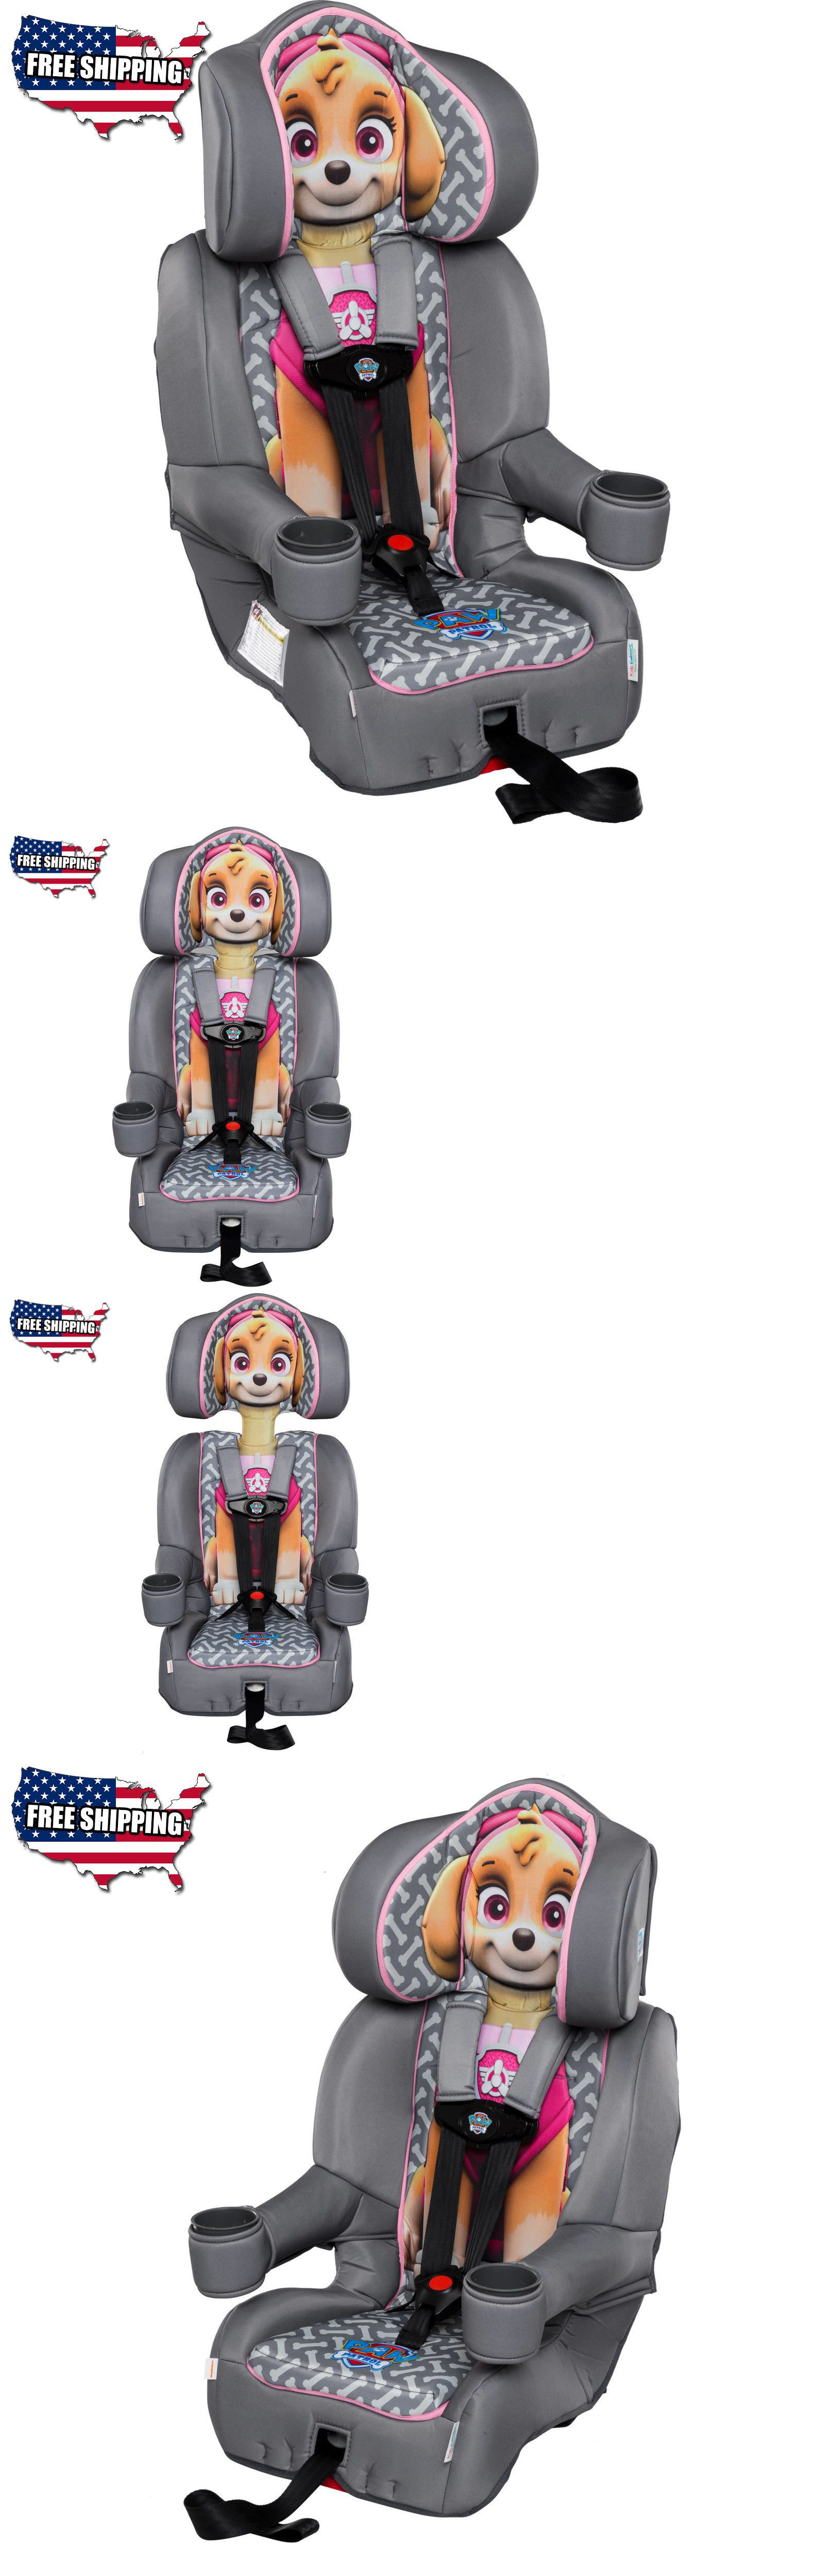 Booster To 80lbs 66694 Nickelodeon Kidsembrace Combination Toddler Harness Car Seat Paw Patrol